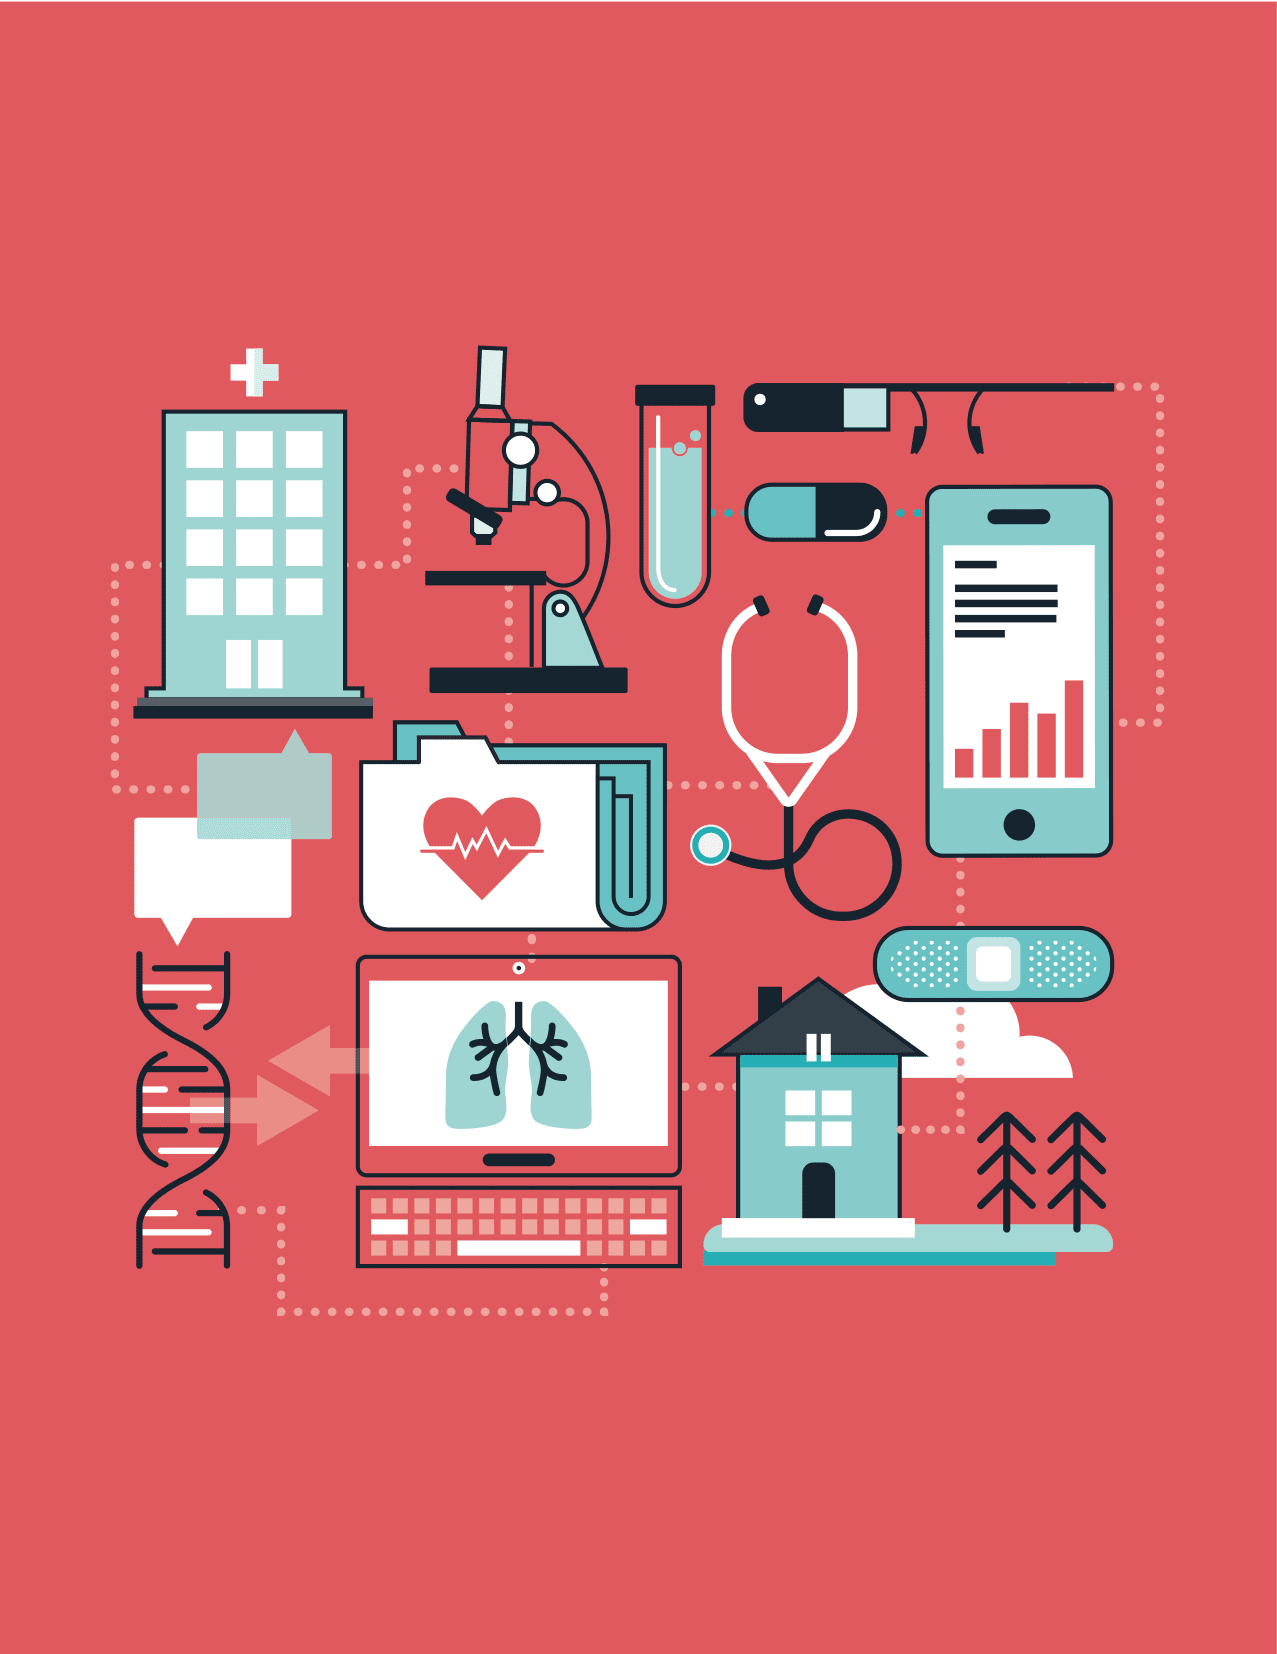 Transforming Health: Ontario startups in decentralized and connected care